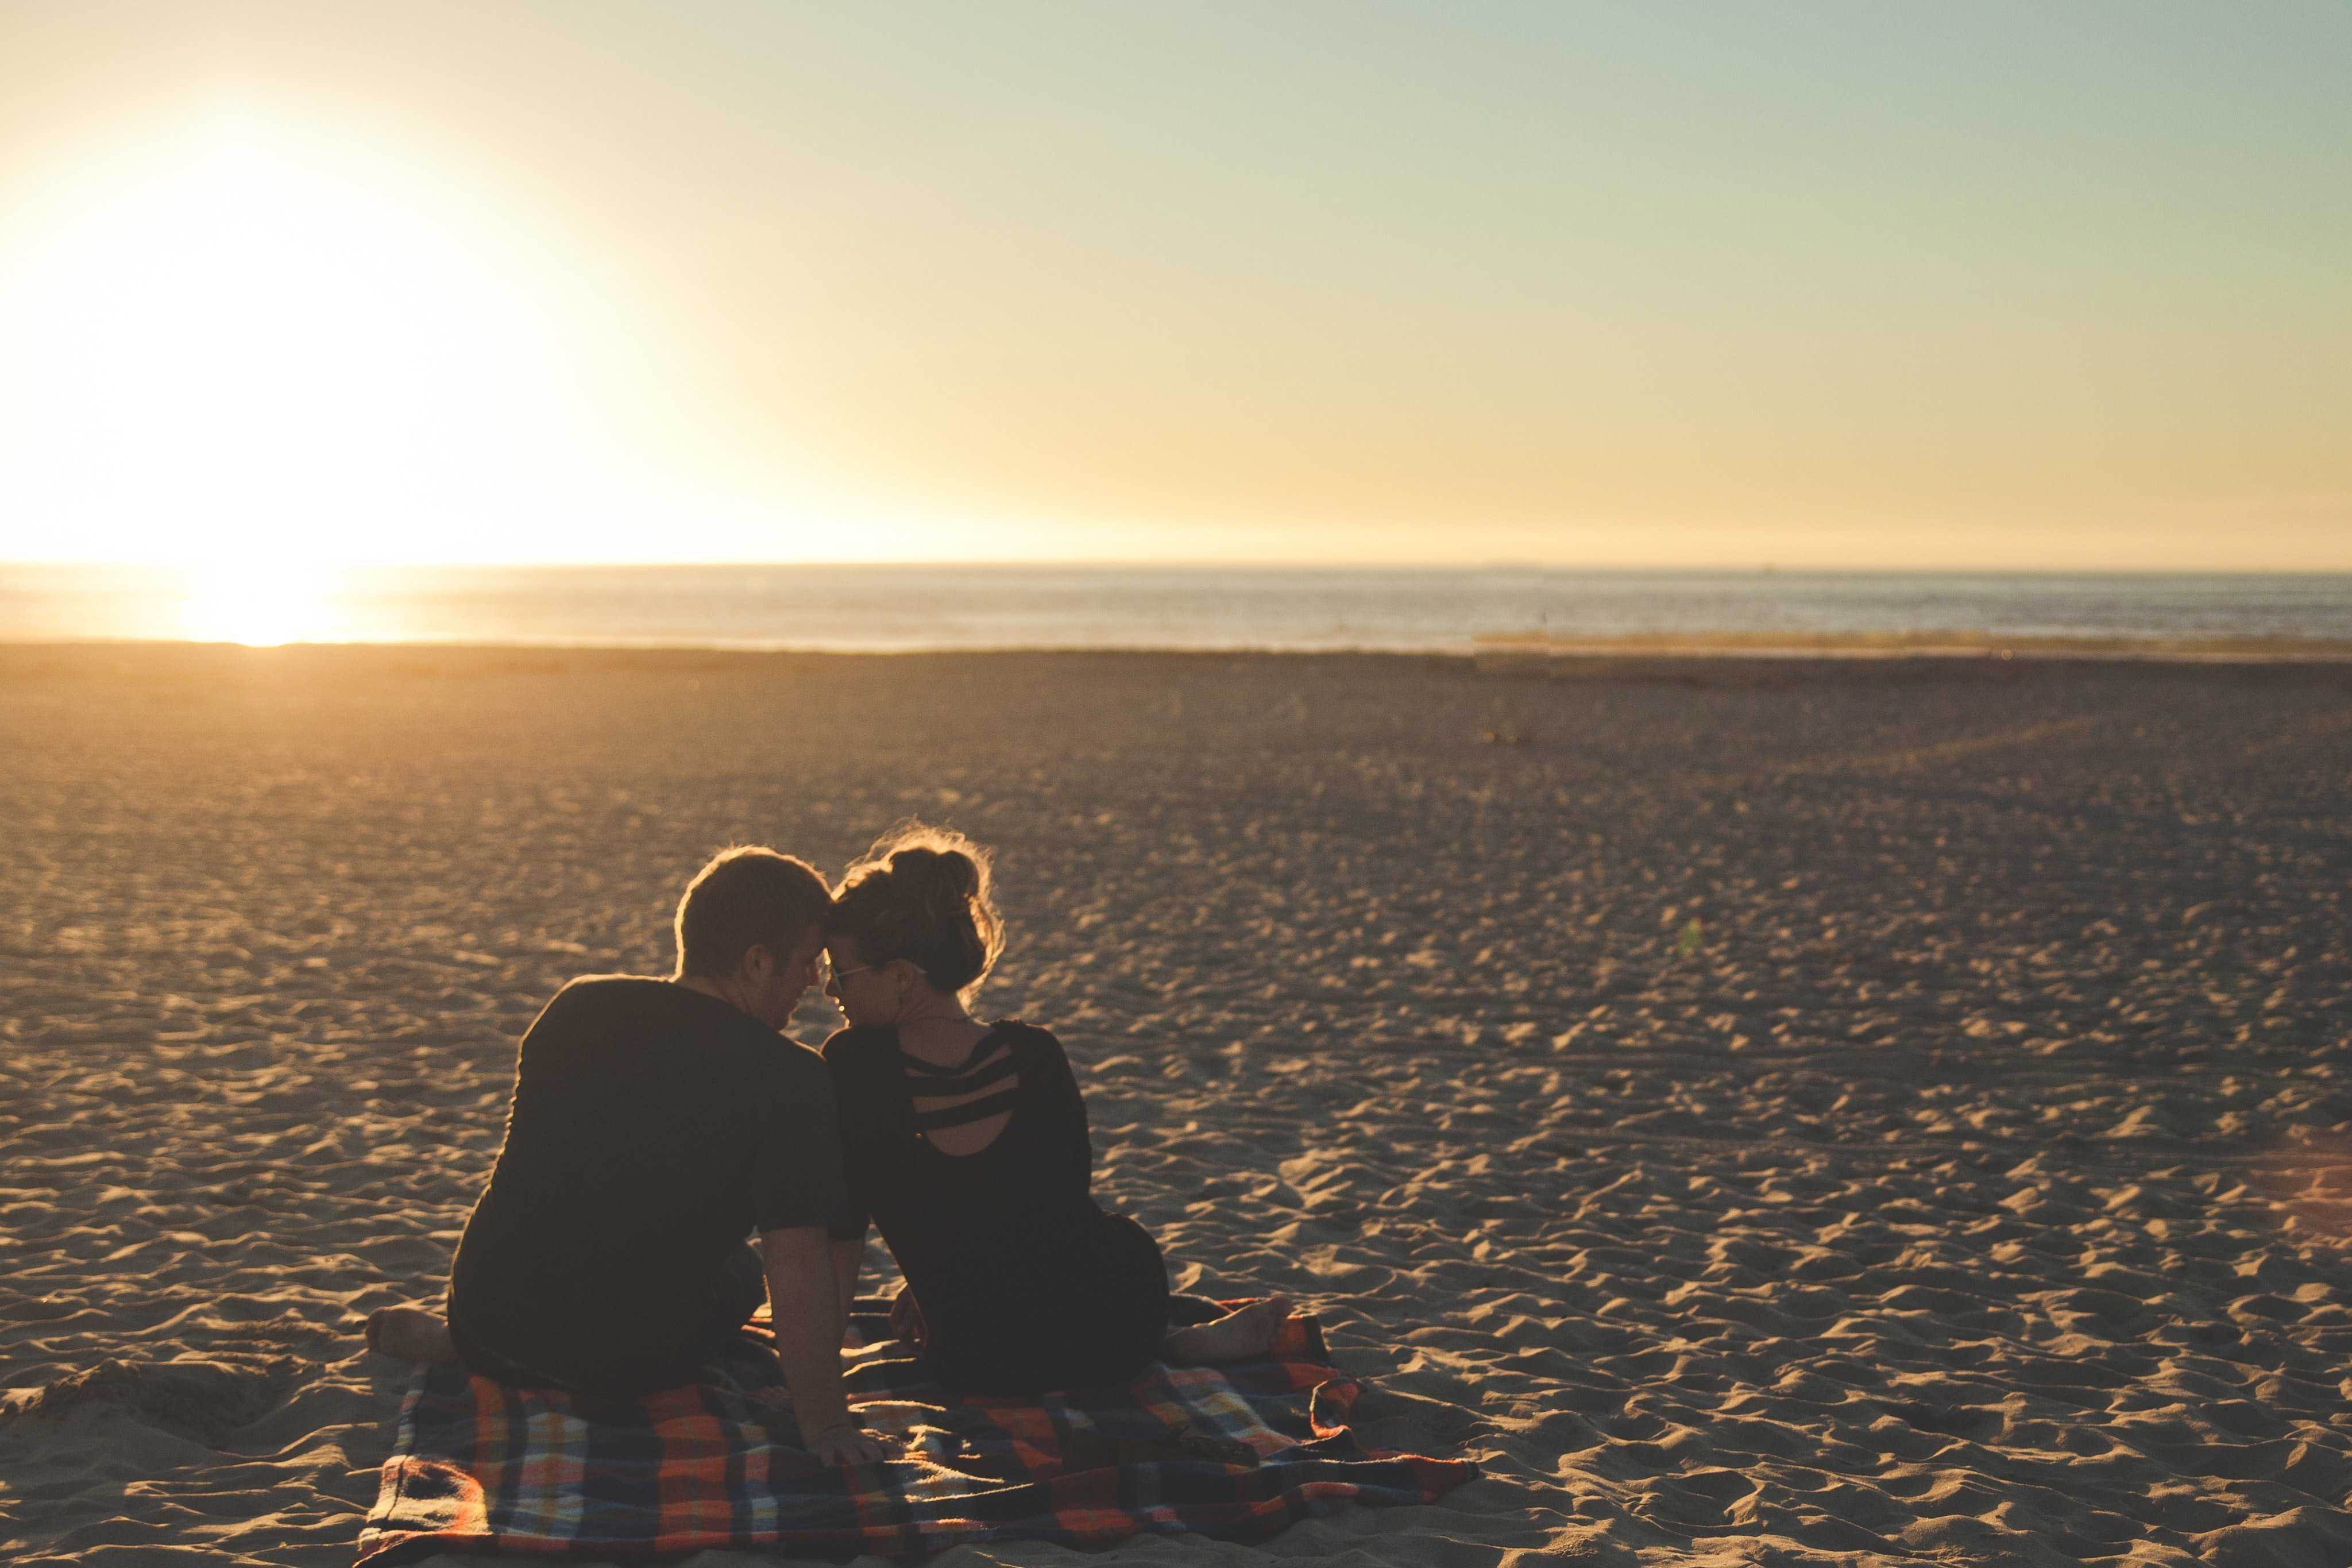 Our first date (if we don't count the techno club) took place on a beach an hour drive from the city | Source: Pexels